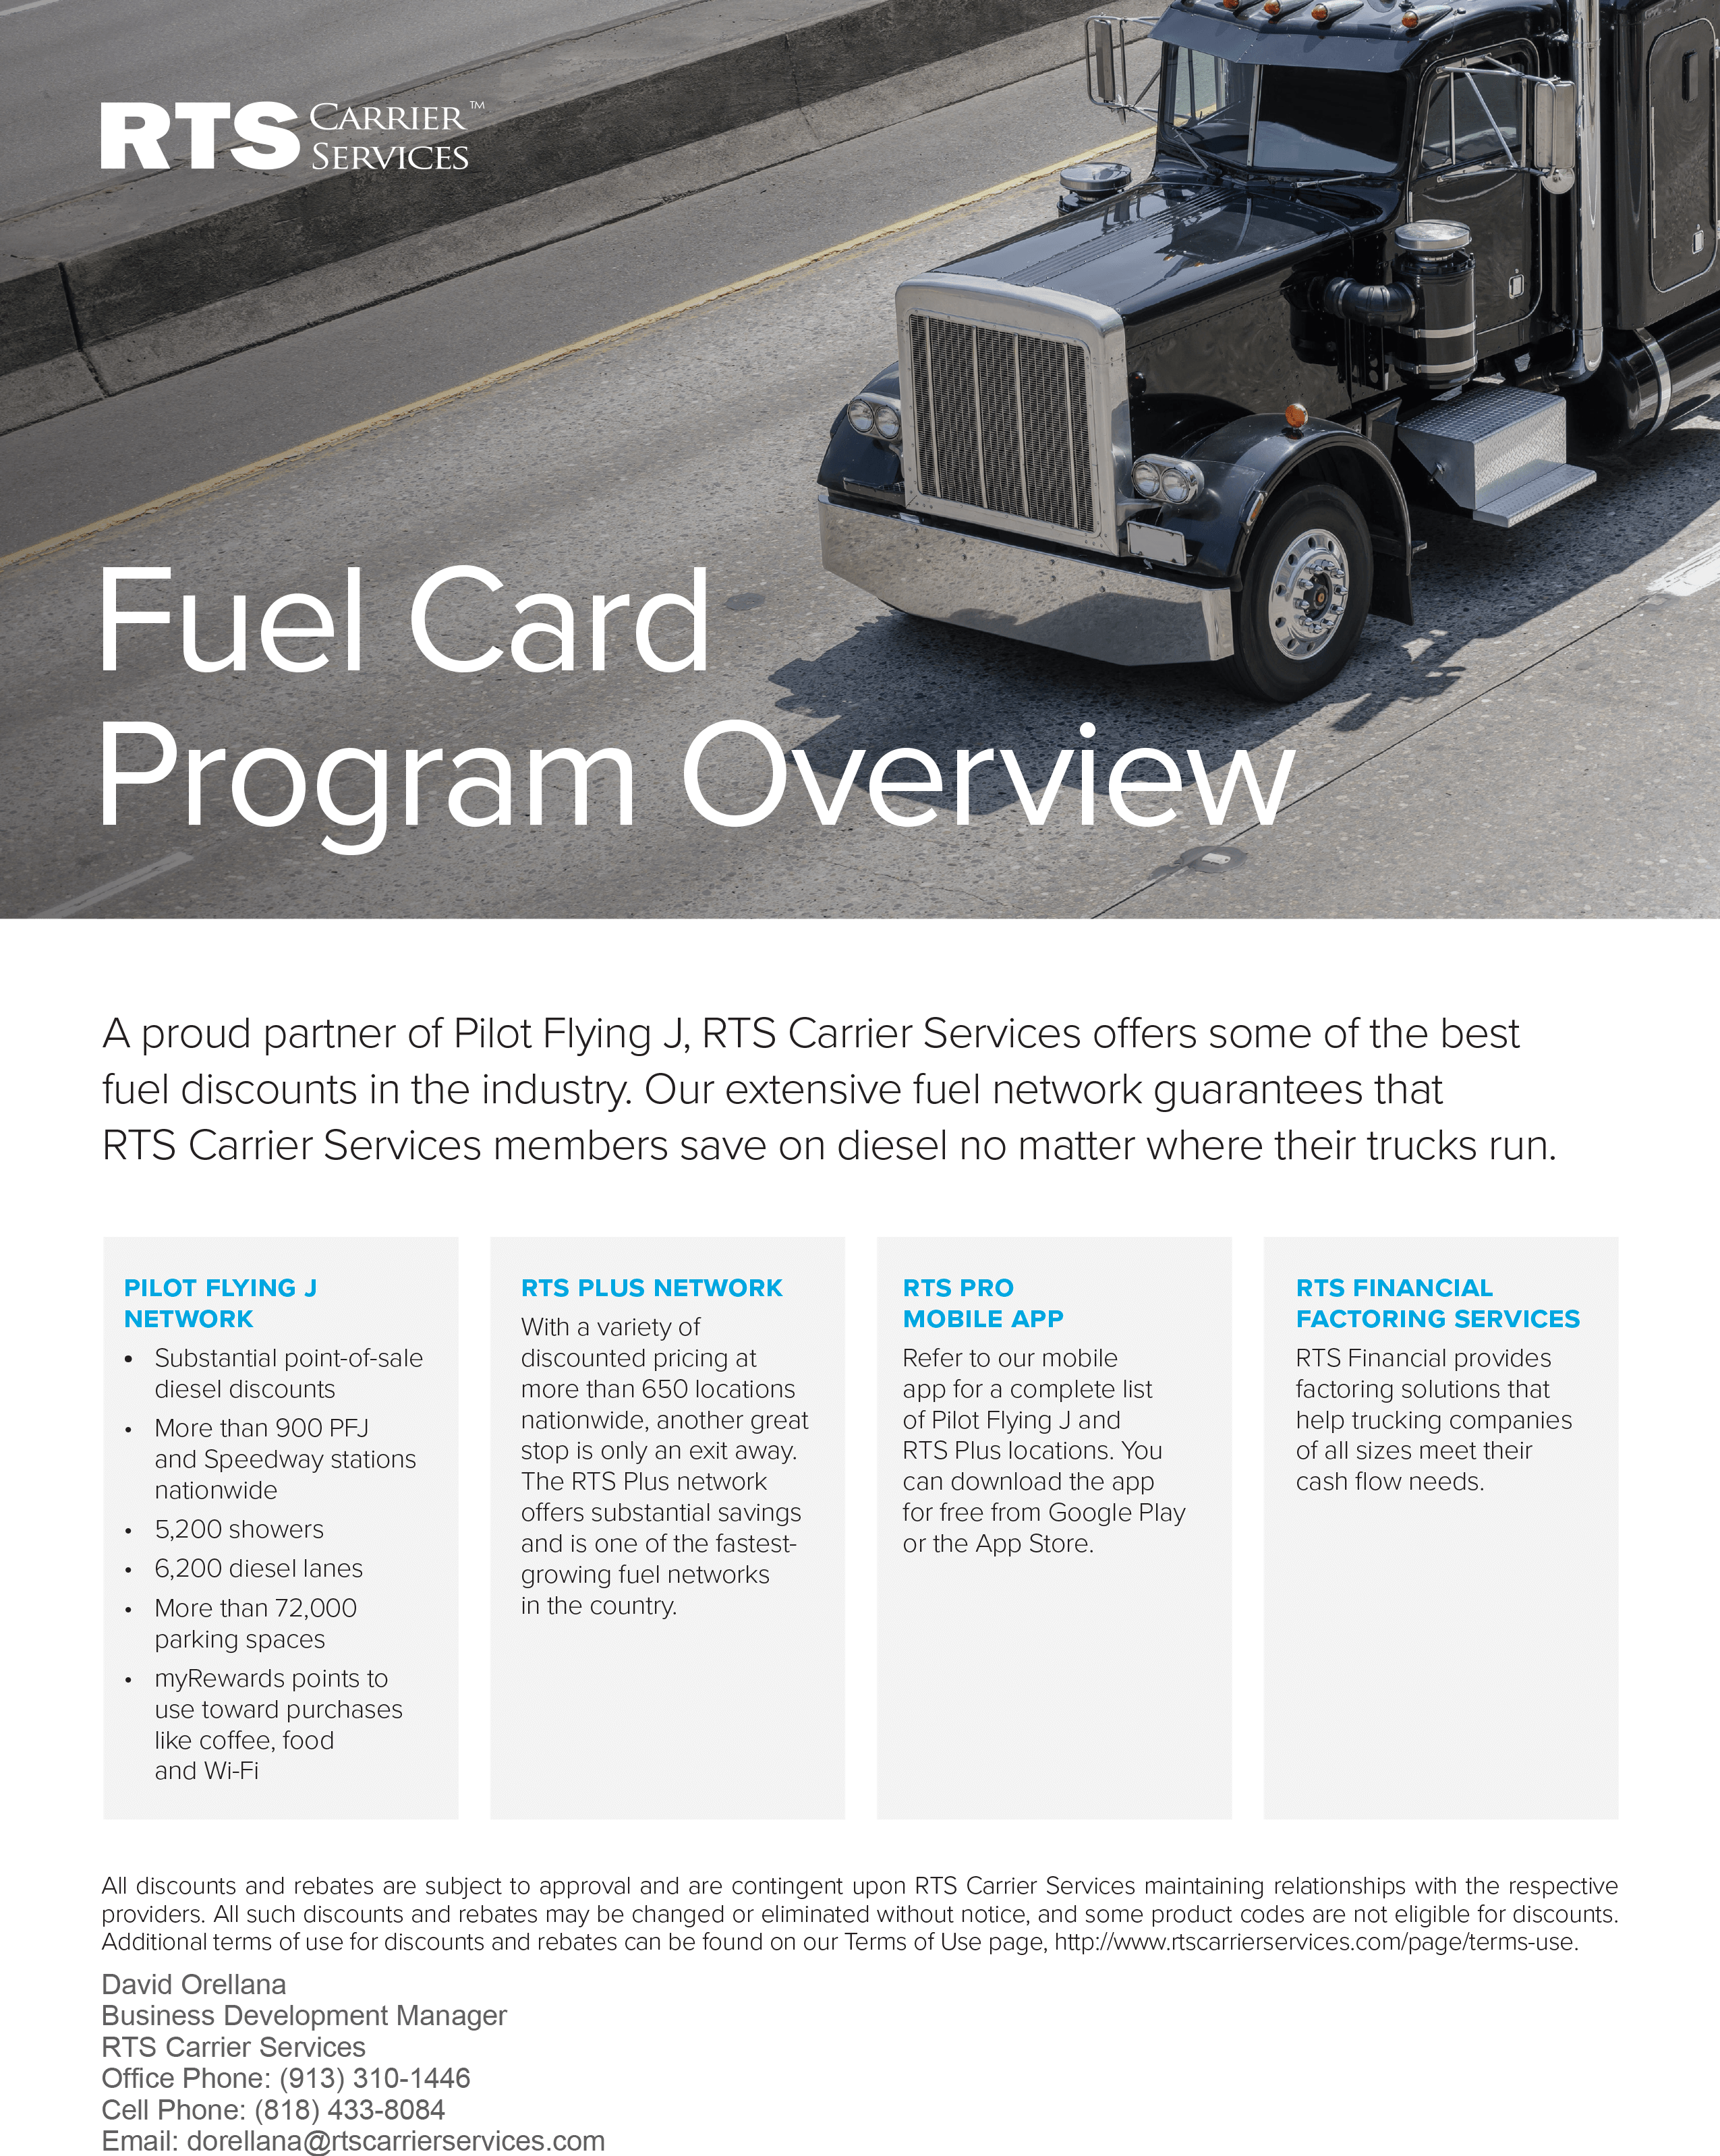 Fuel Card Program Overview